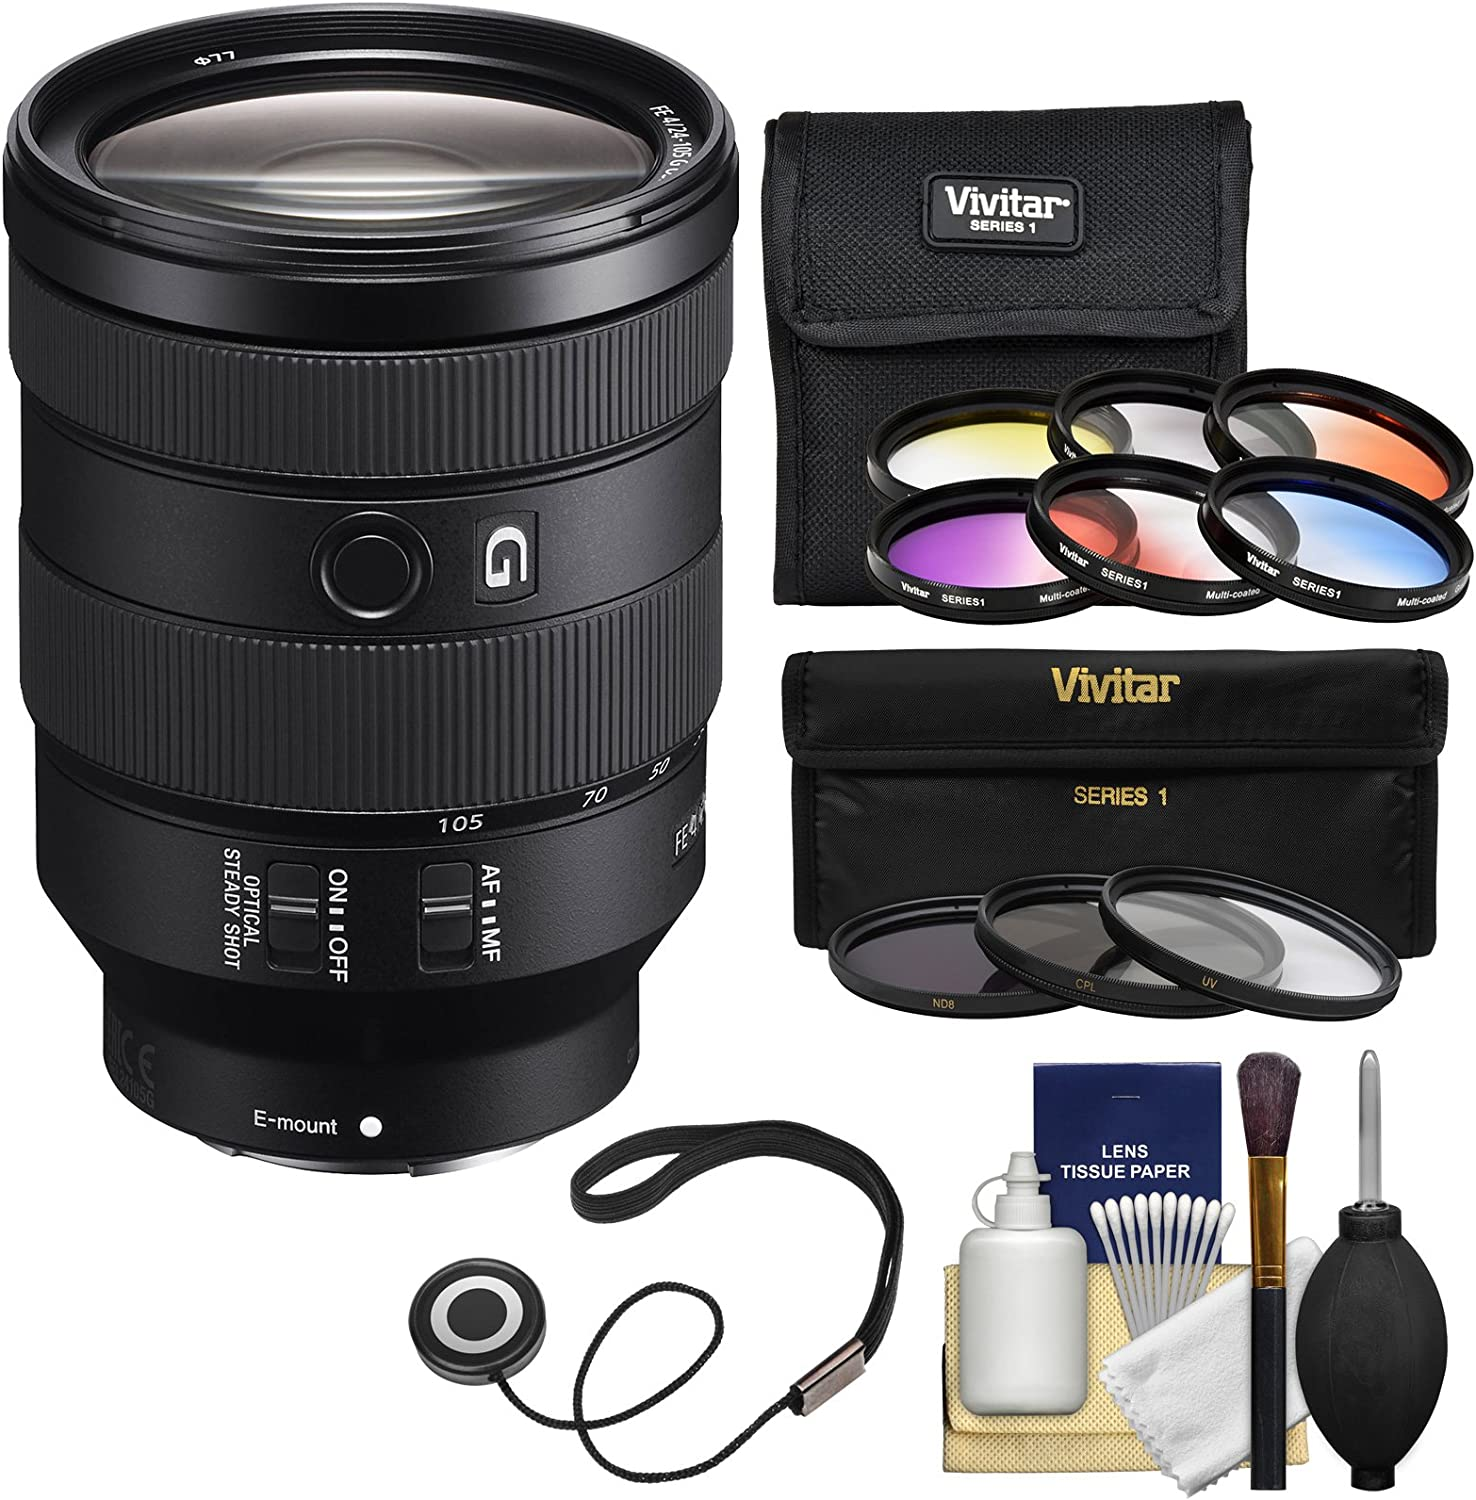 Sony Alpha E-Mount FE 24-105mm f/4.0 G OSS Zoom Lens with 3 UV/CPL/ND8 & 6 Graduated Color Filters + Kit